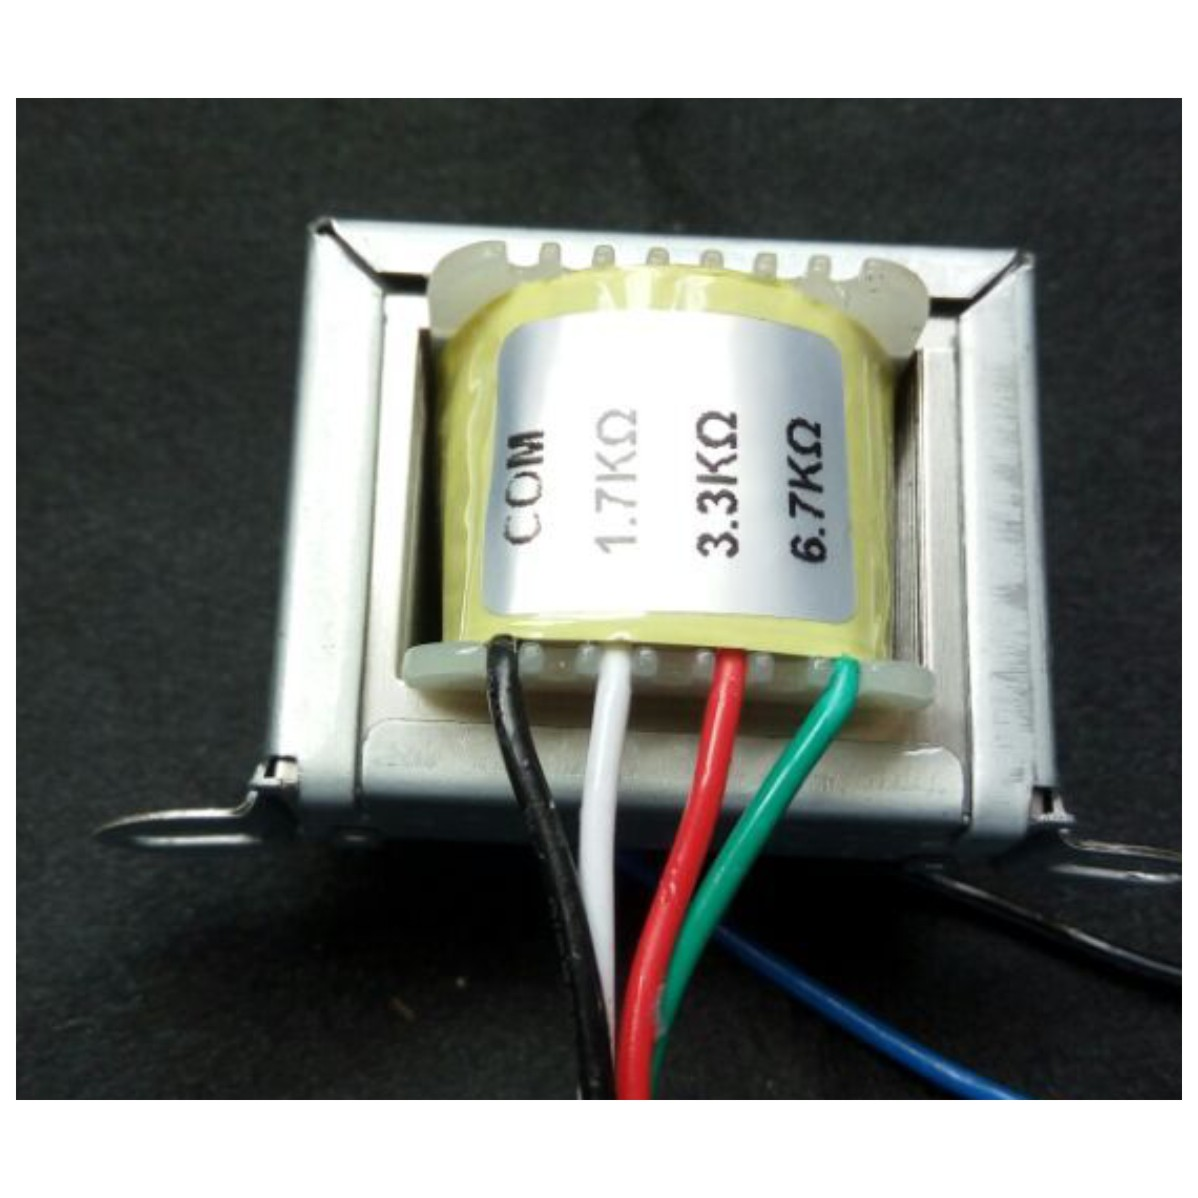 100V /70V Matching transformer at 8 ohm